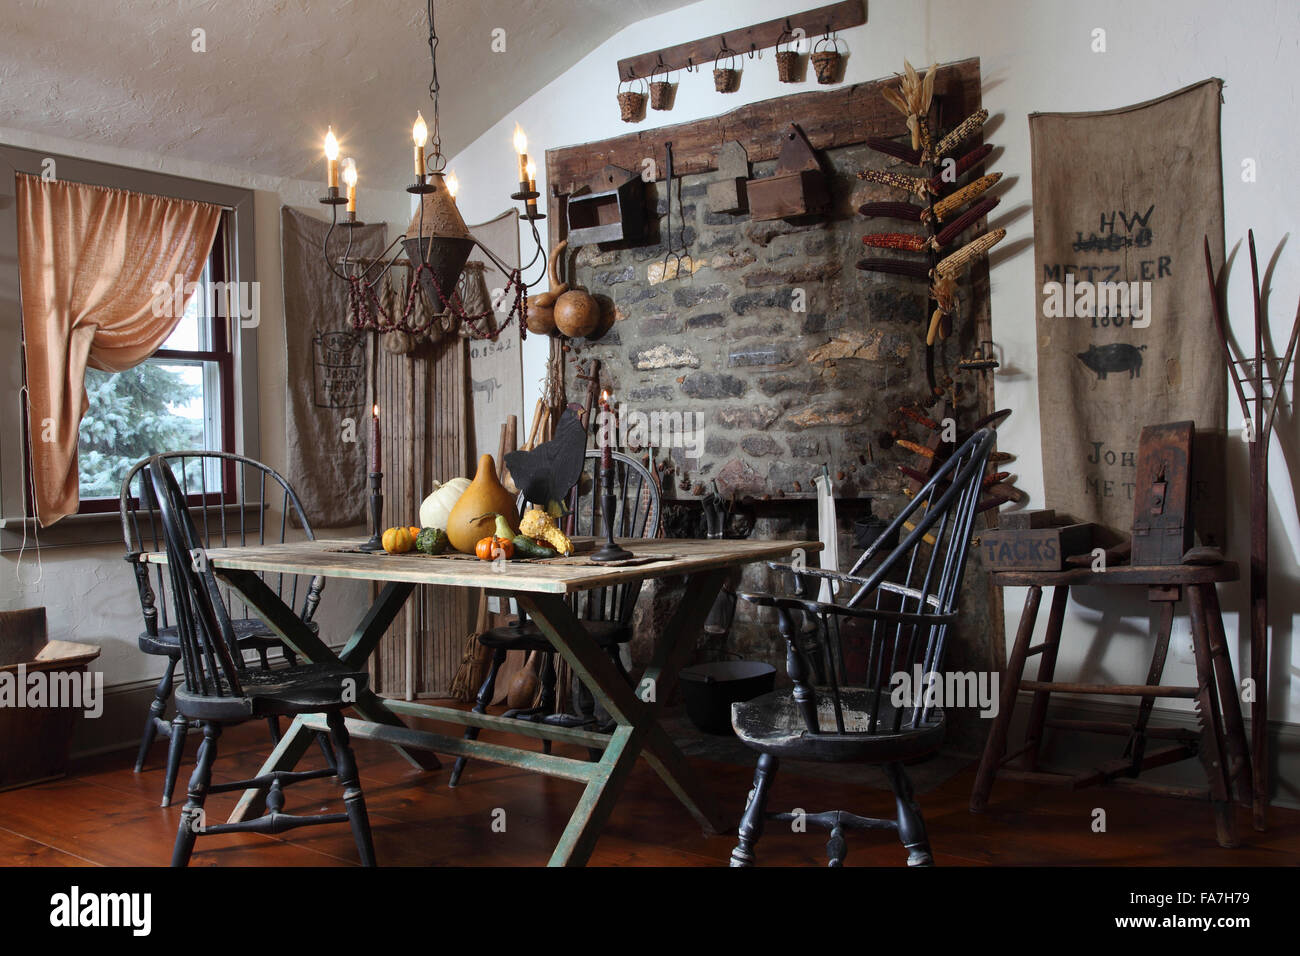 Dining room table and chairs in early American primitive ...